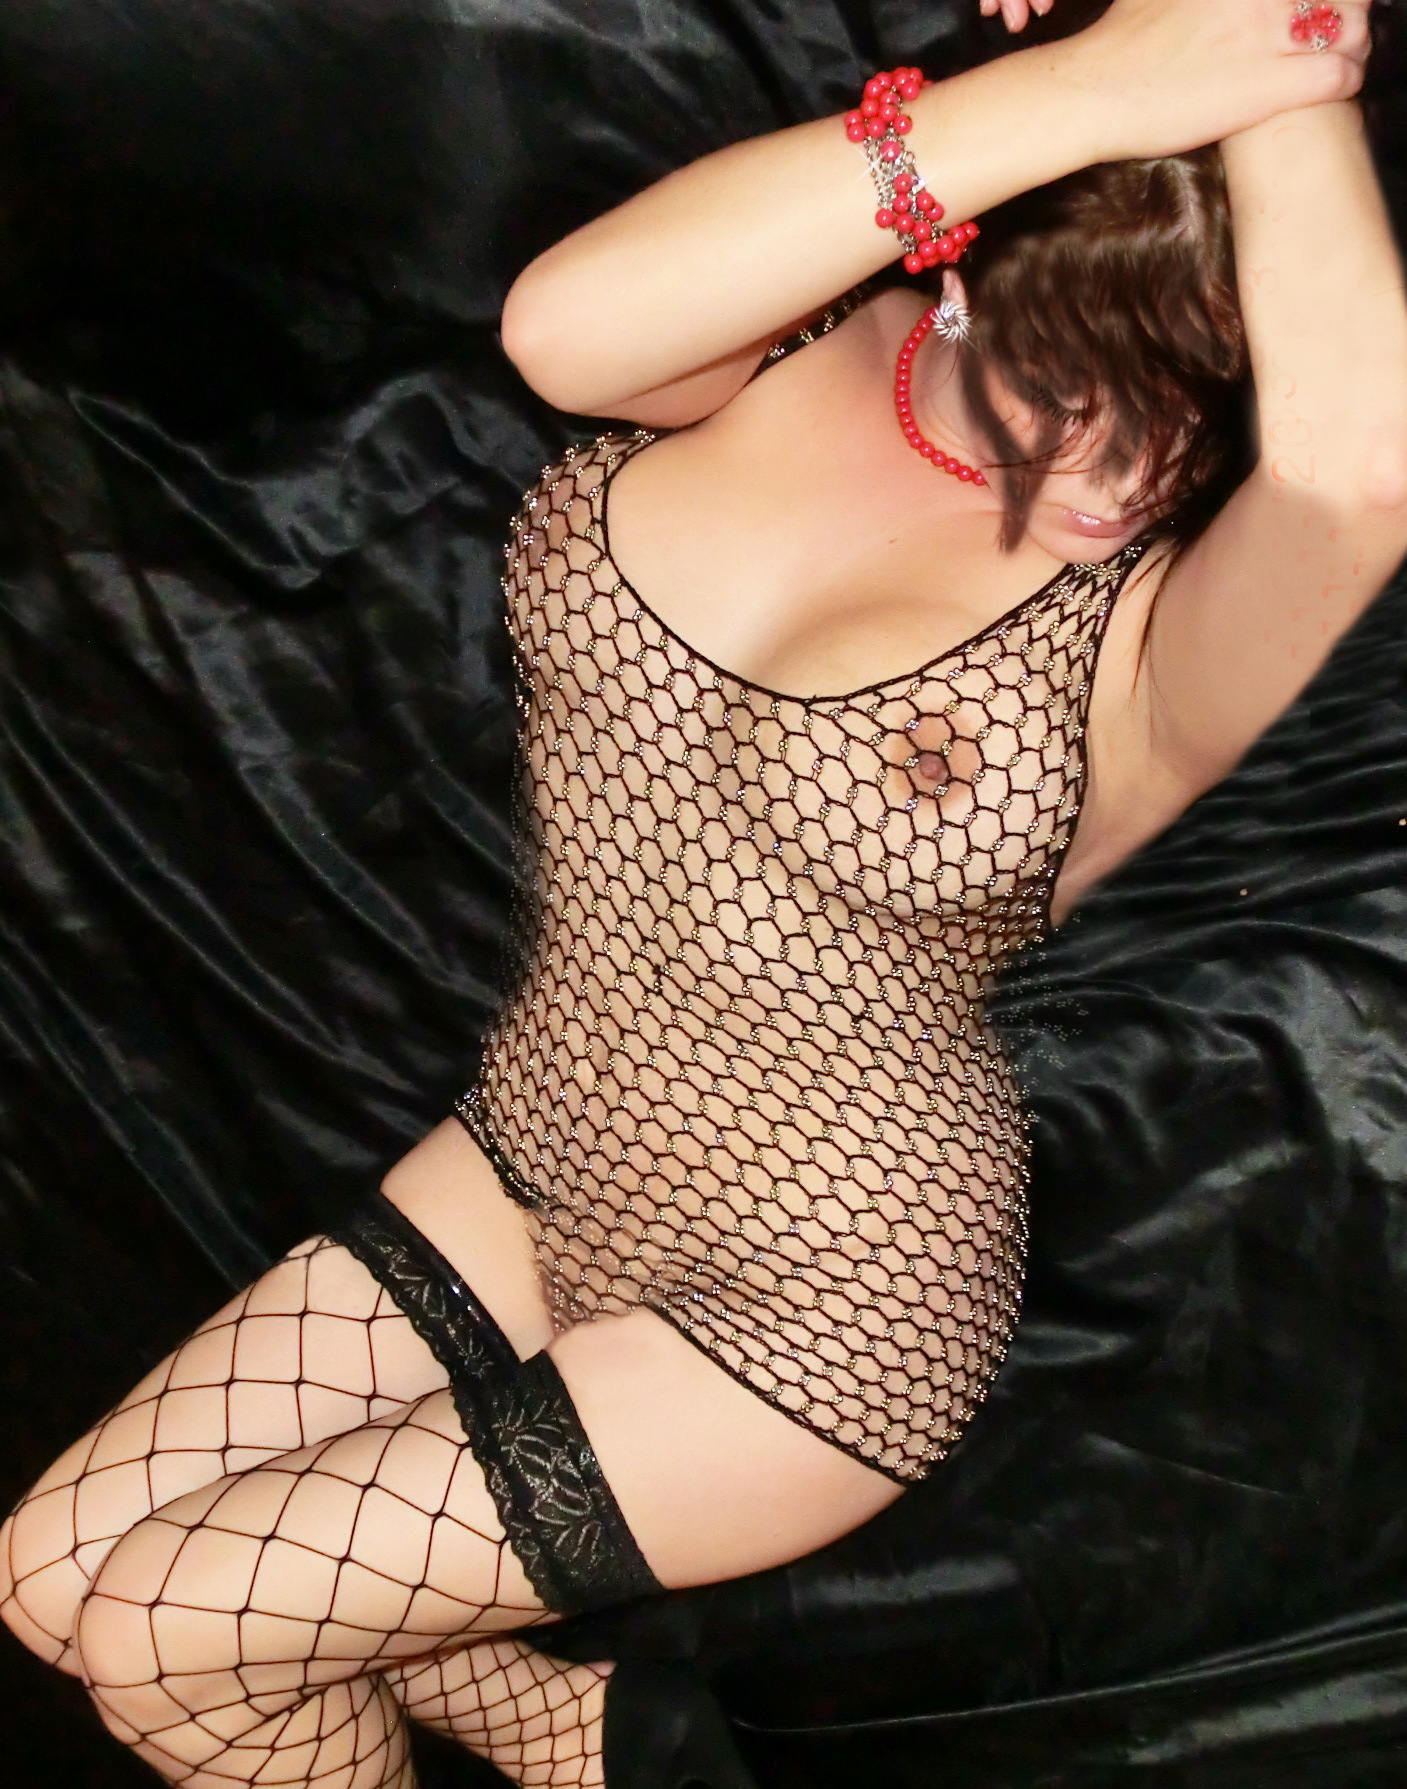 busty brunette in fishnet